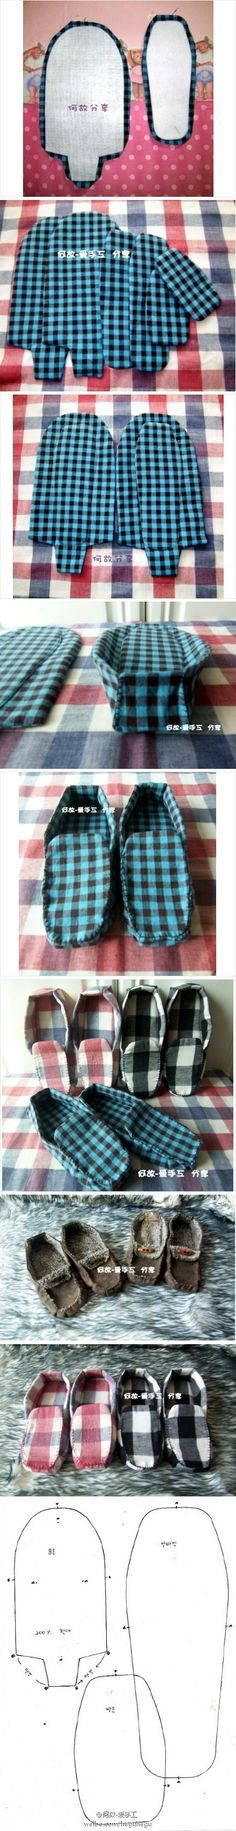 diy slippers #diy #crafts